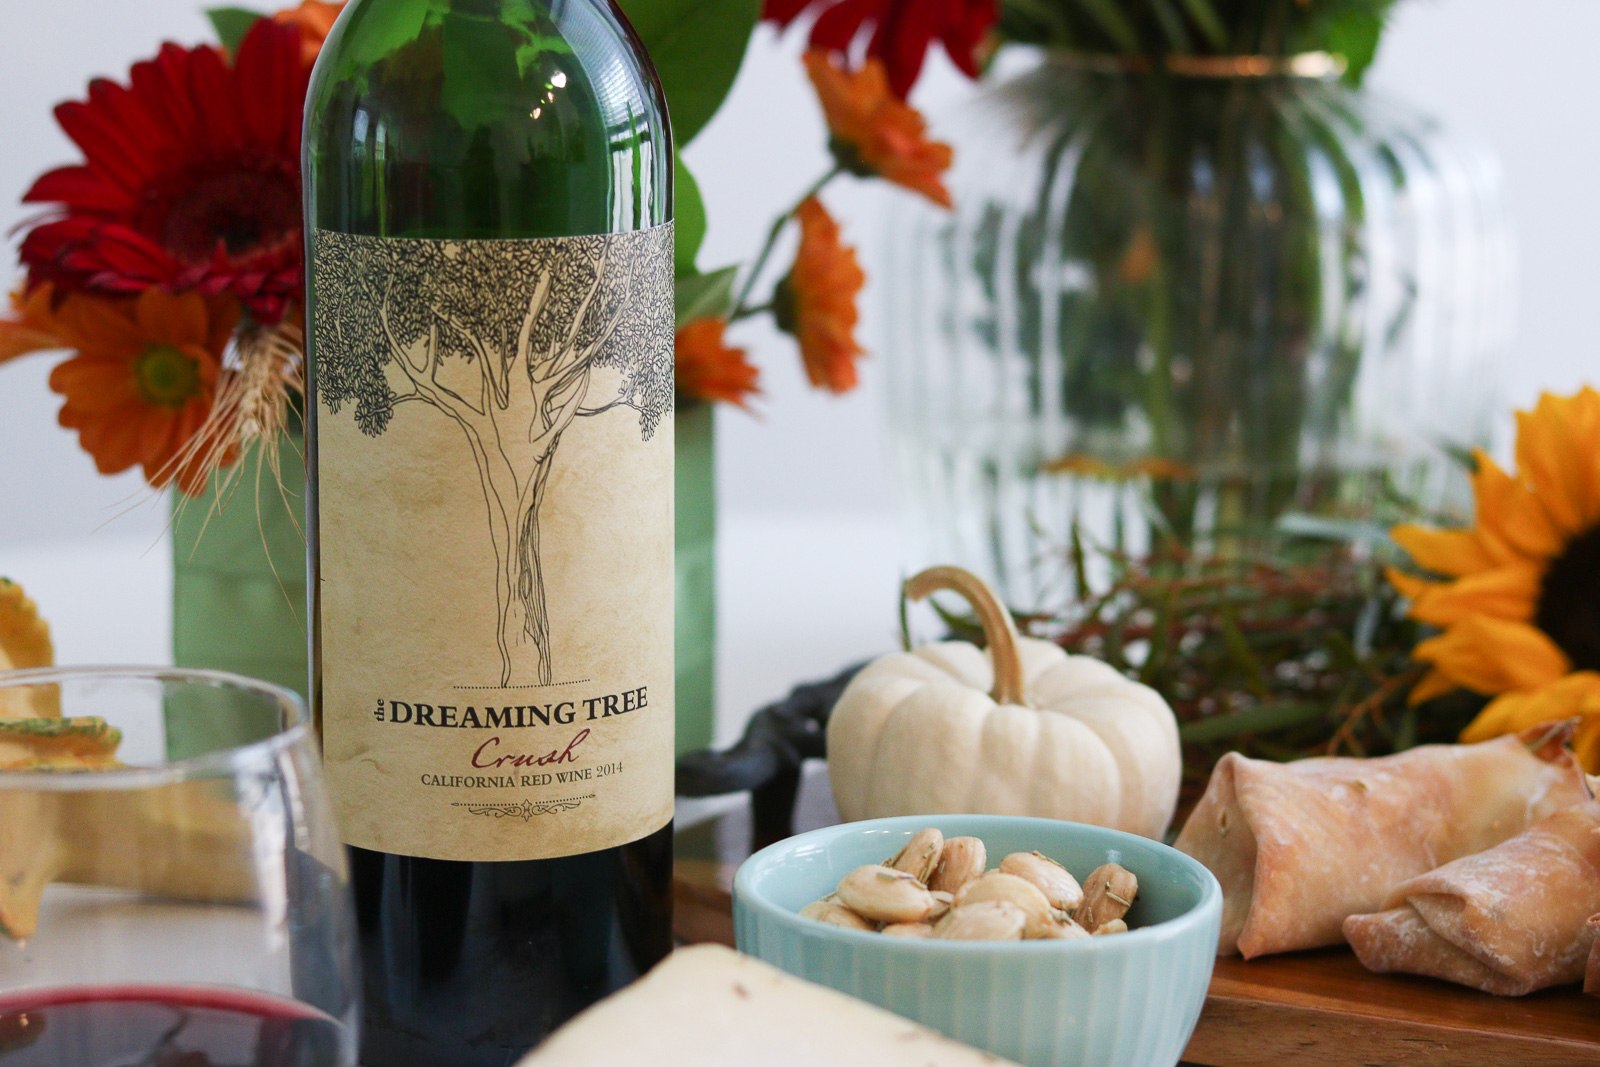 The Dreaming Tree Wine